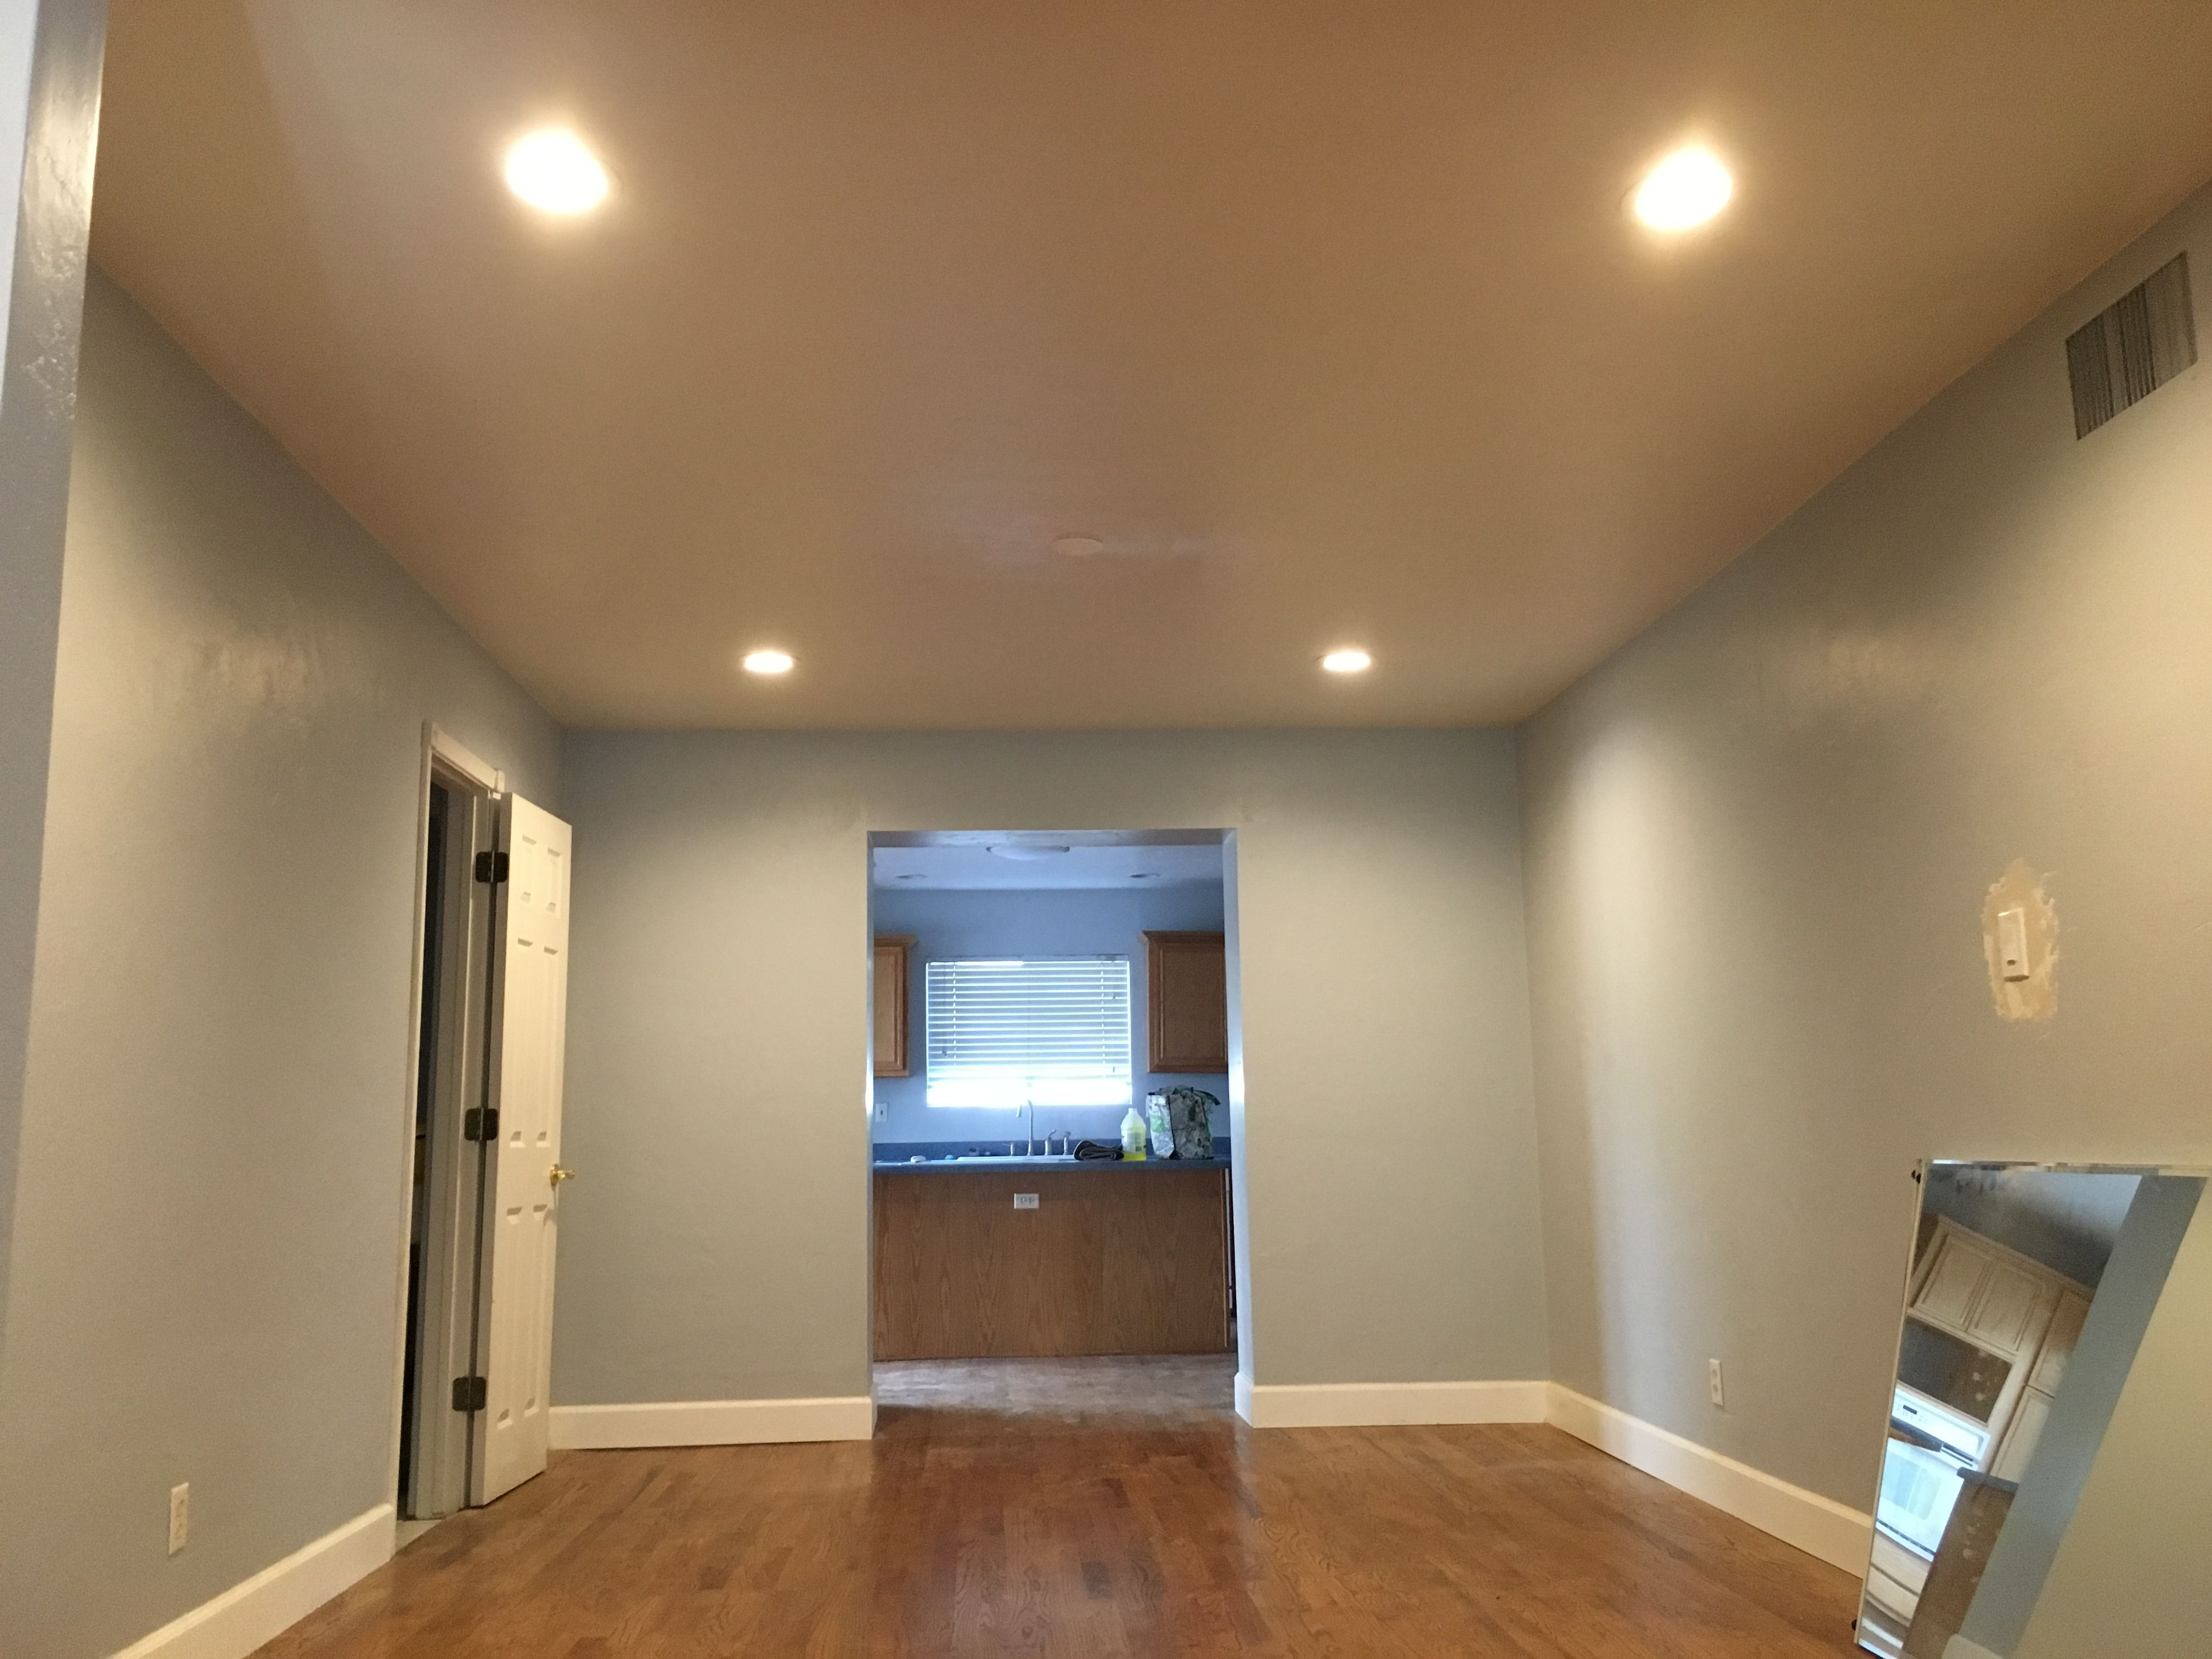 Installed recessed lighting phillips hue lighting for customer with installed 4 x 6 inch recessed lights in dining room with a dimmer switch aloadofball Choice Image